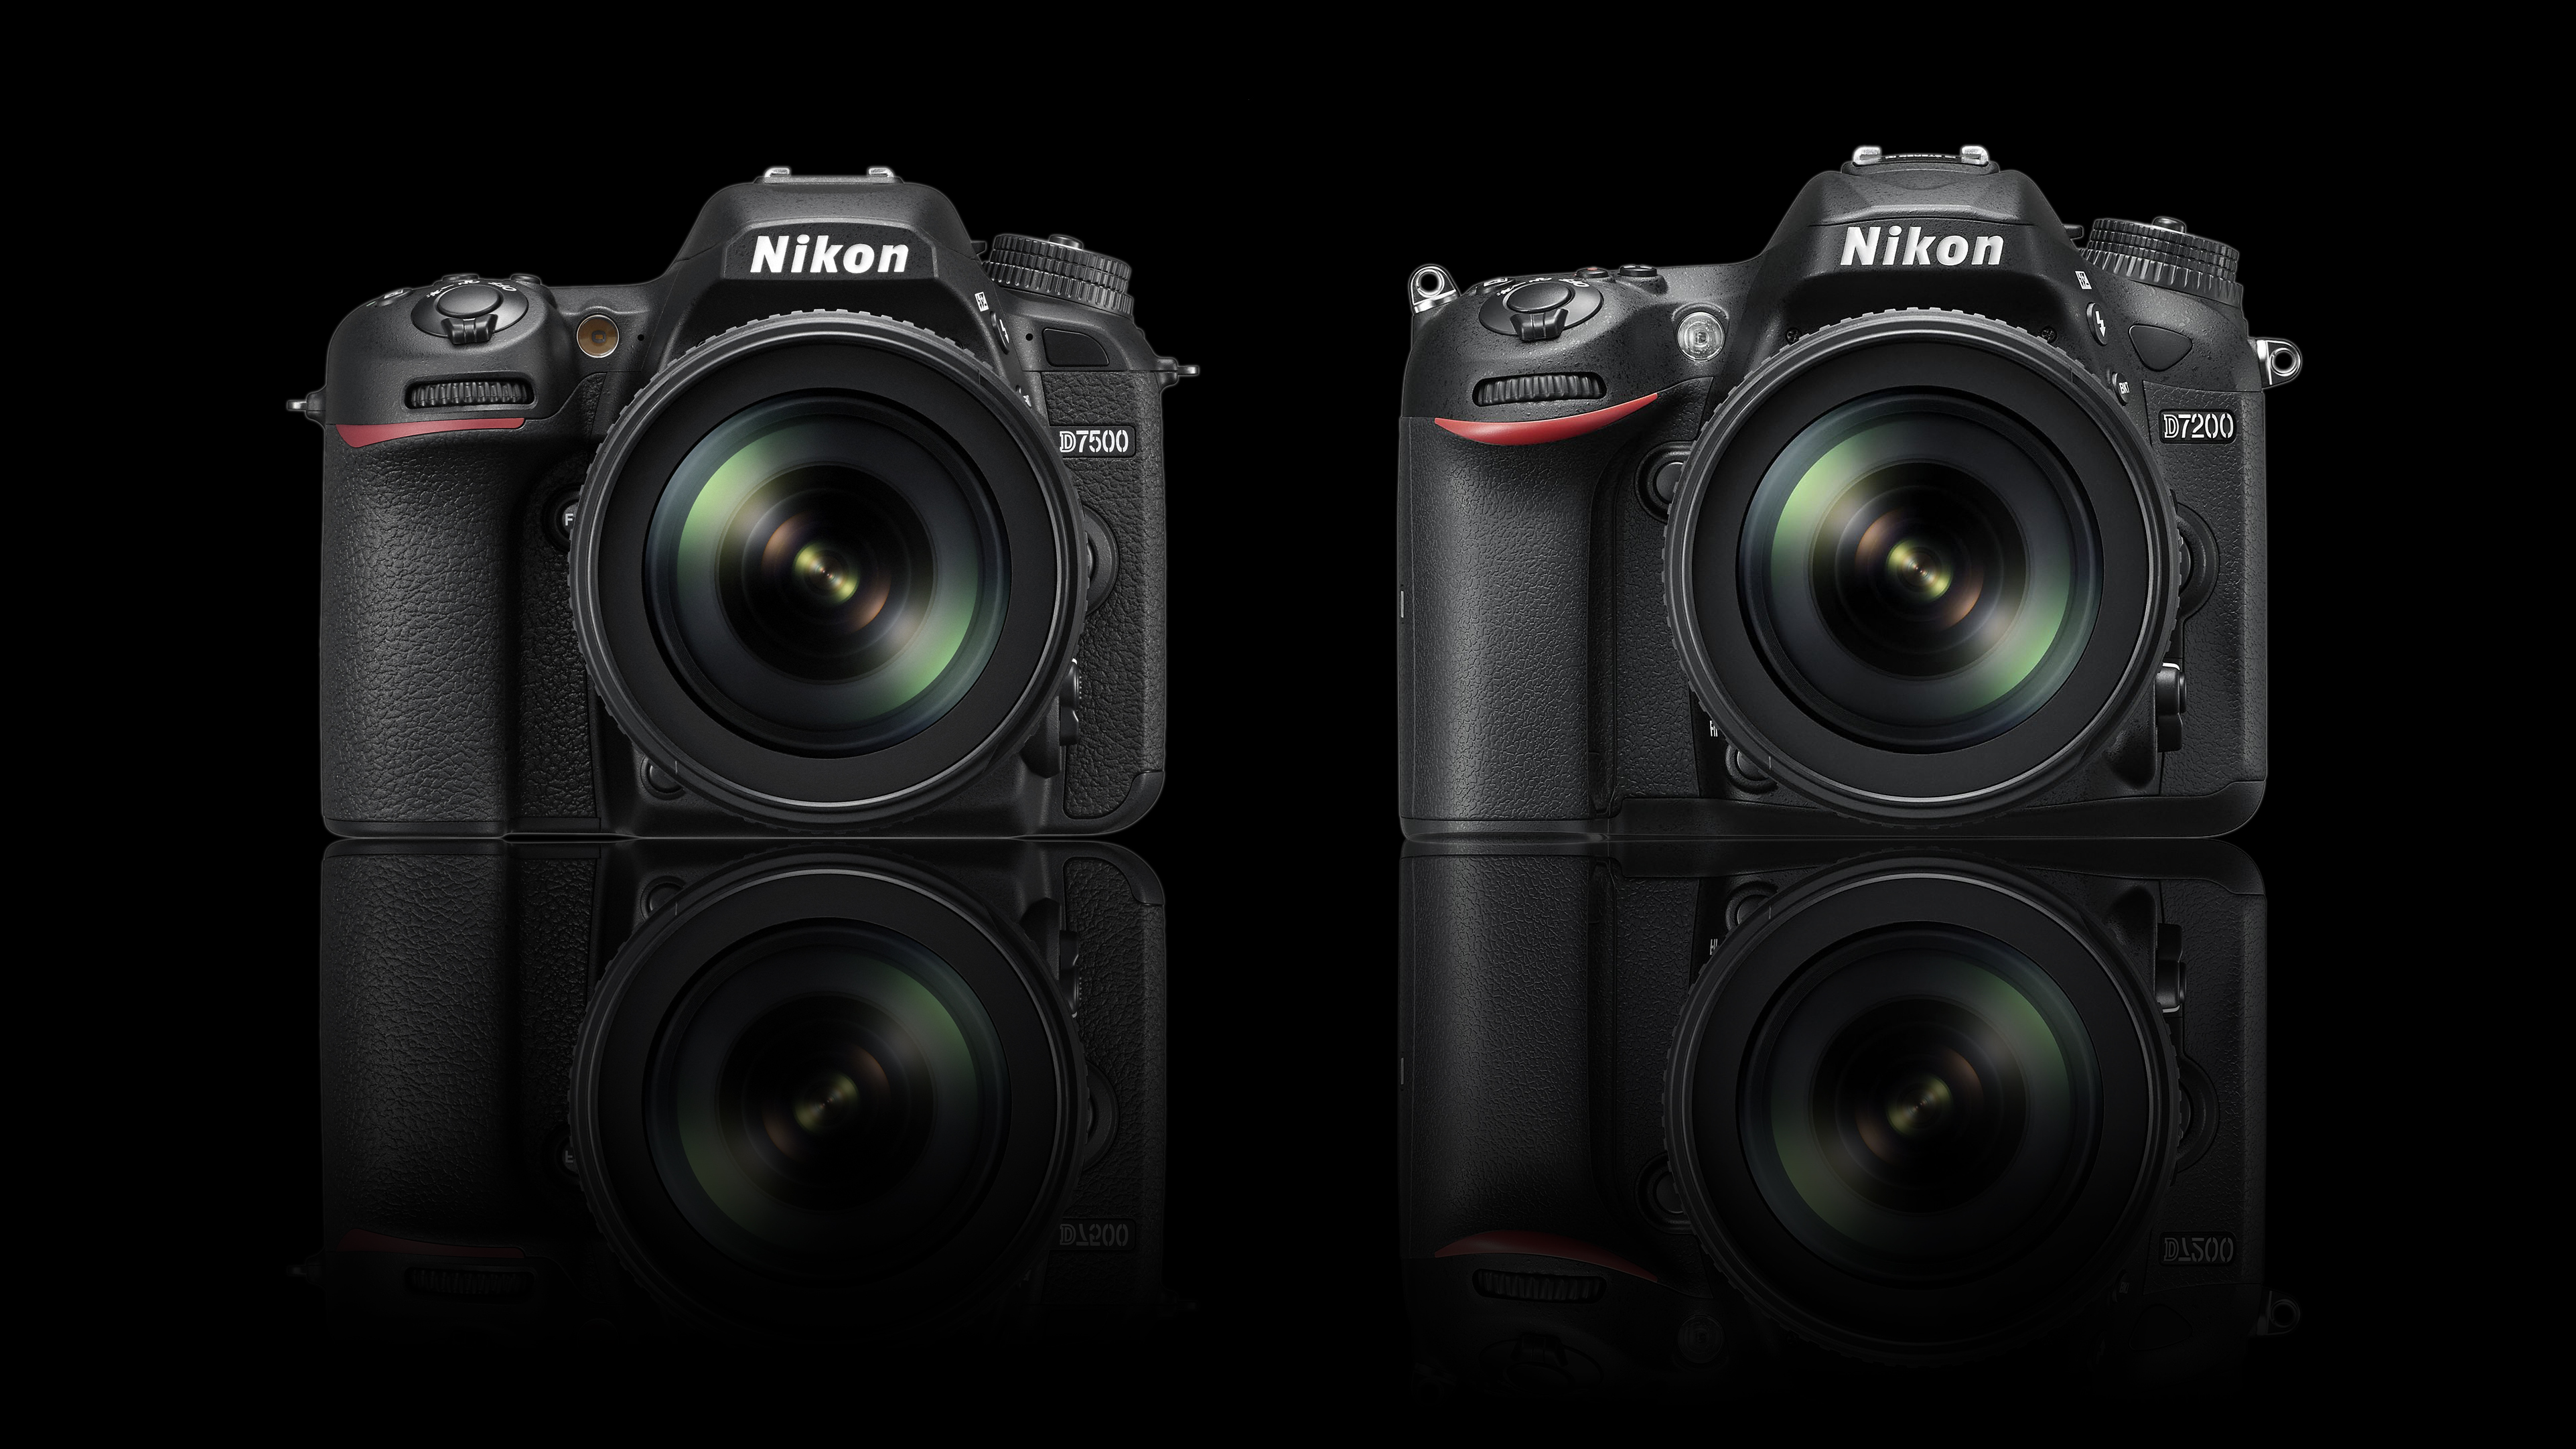 Nikon D7500 vs D7200: 8 key differences you need to know | TechRadar